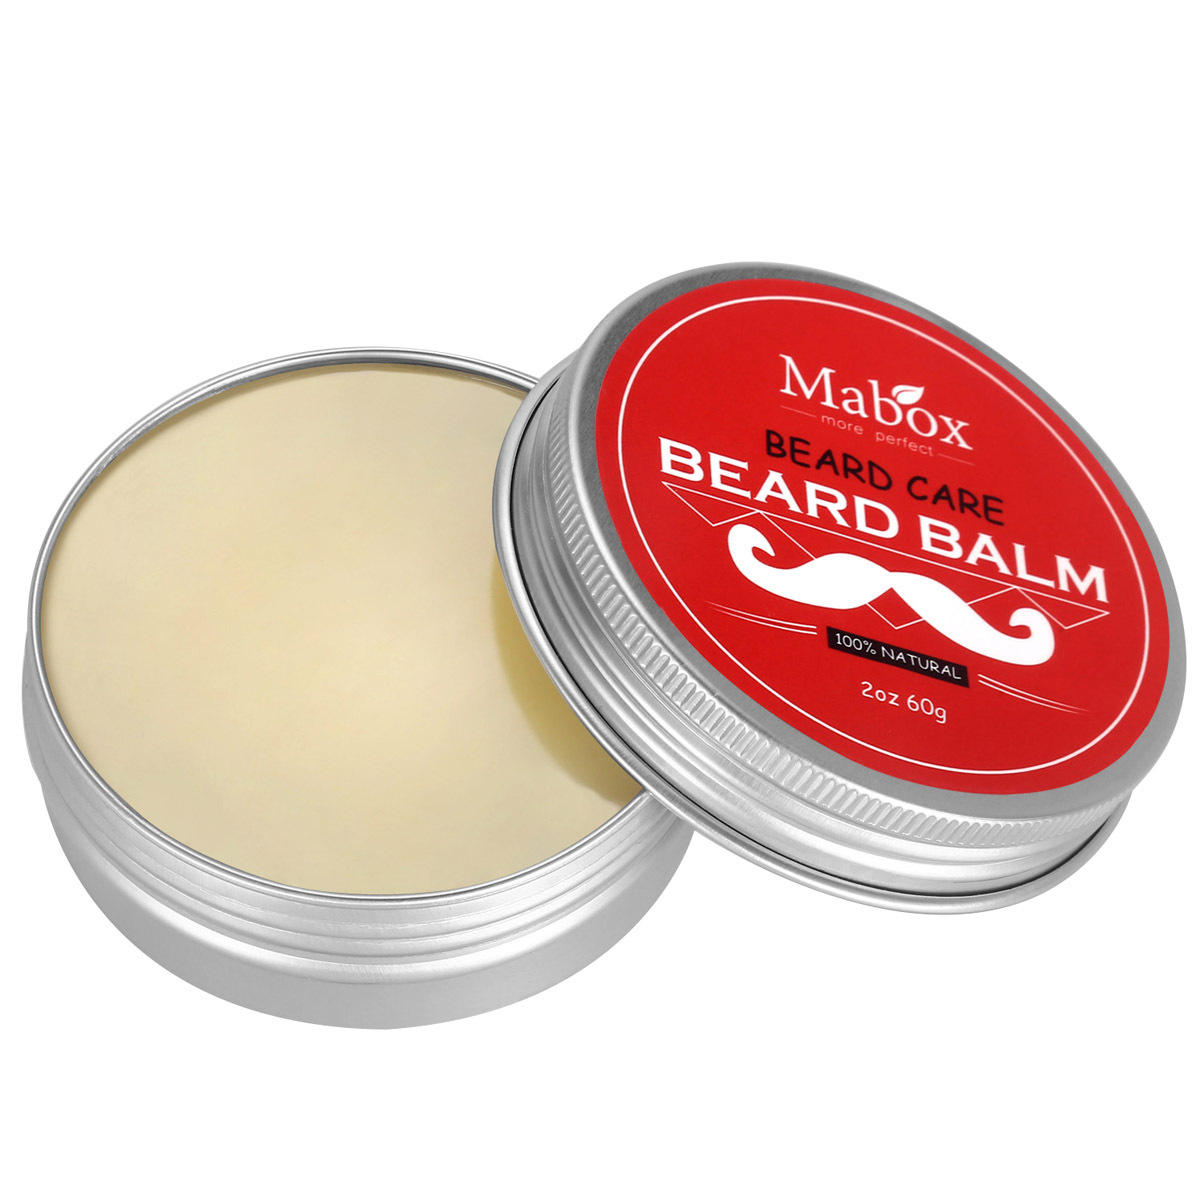 Mabox Beard Balm Moustache Wax for Men Styling Moisturizing Smoothing Conditioner Beard Care 60g